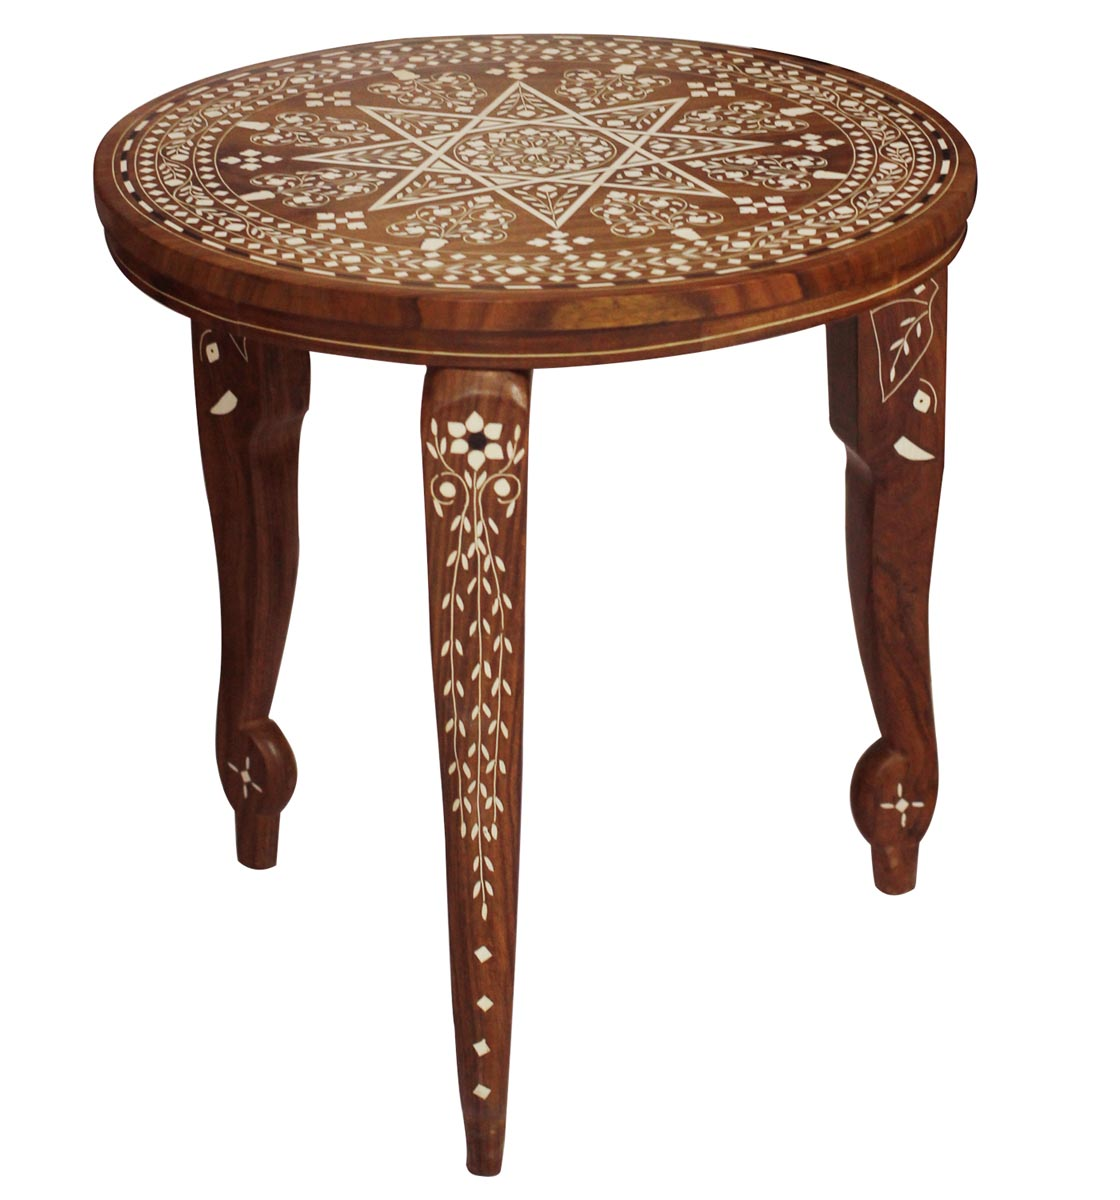 bulk source hand carved decorative wooden accent table with round wood top detachable white rectangle tablecloth threshold side bottle wine rack living room sofa tables cover